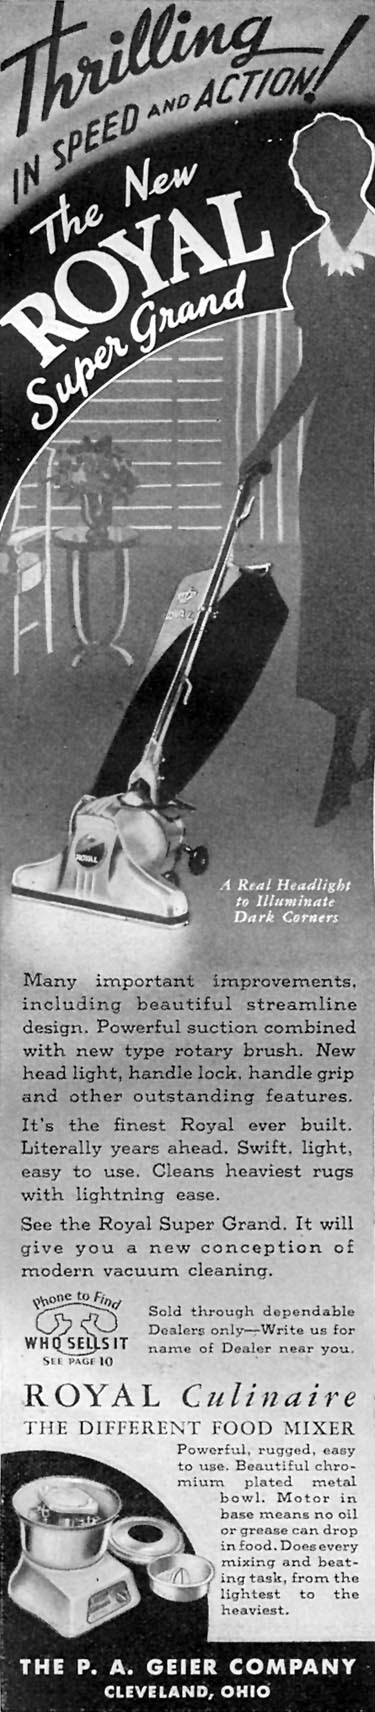 ROYAL SUPER GRAND VACUUM CLEANERS GOOD HOUSEKEEPING 04/01/1936 p. 244